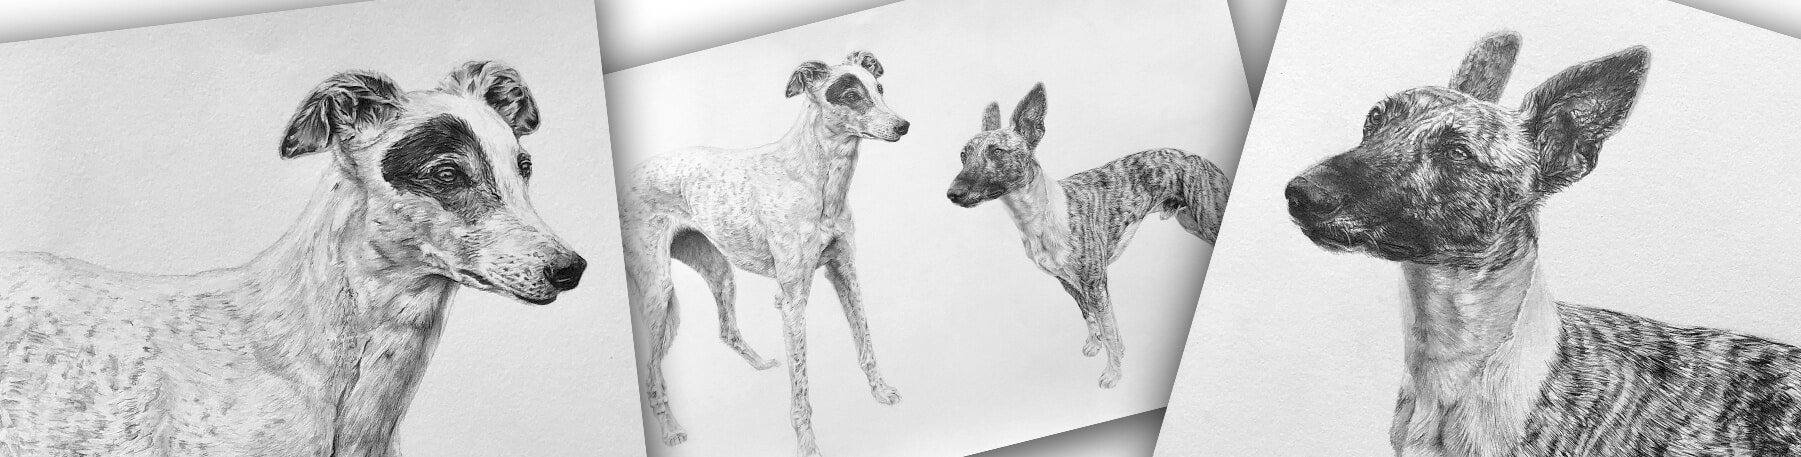 Pencil Pet Portraits in Black and White